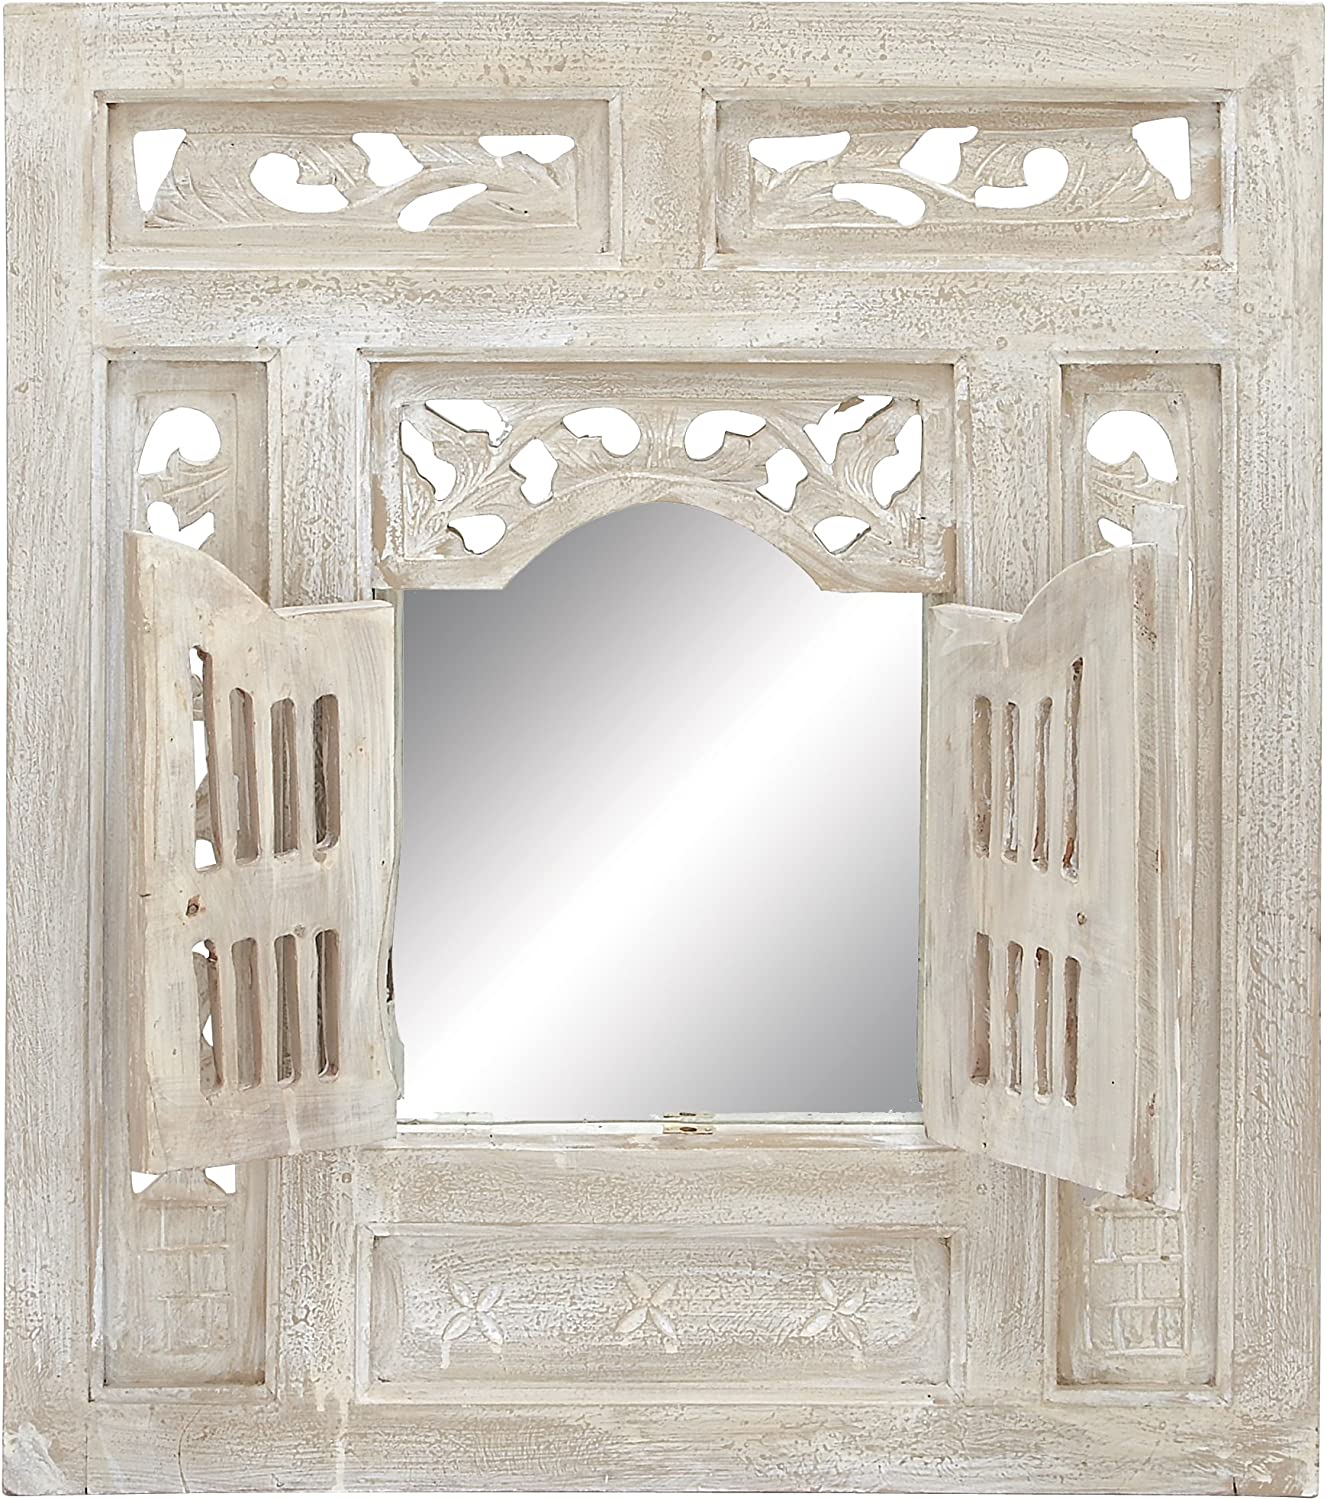 Benzara Deco Wood Mirror Decor, 28 by 24-Inch